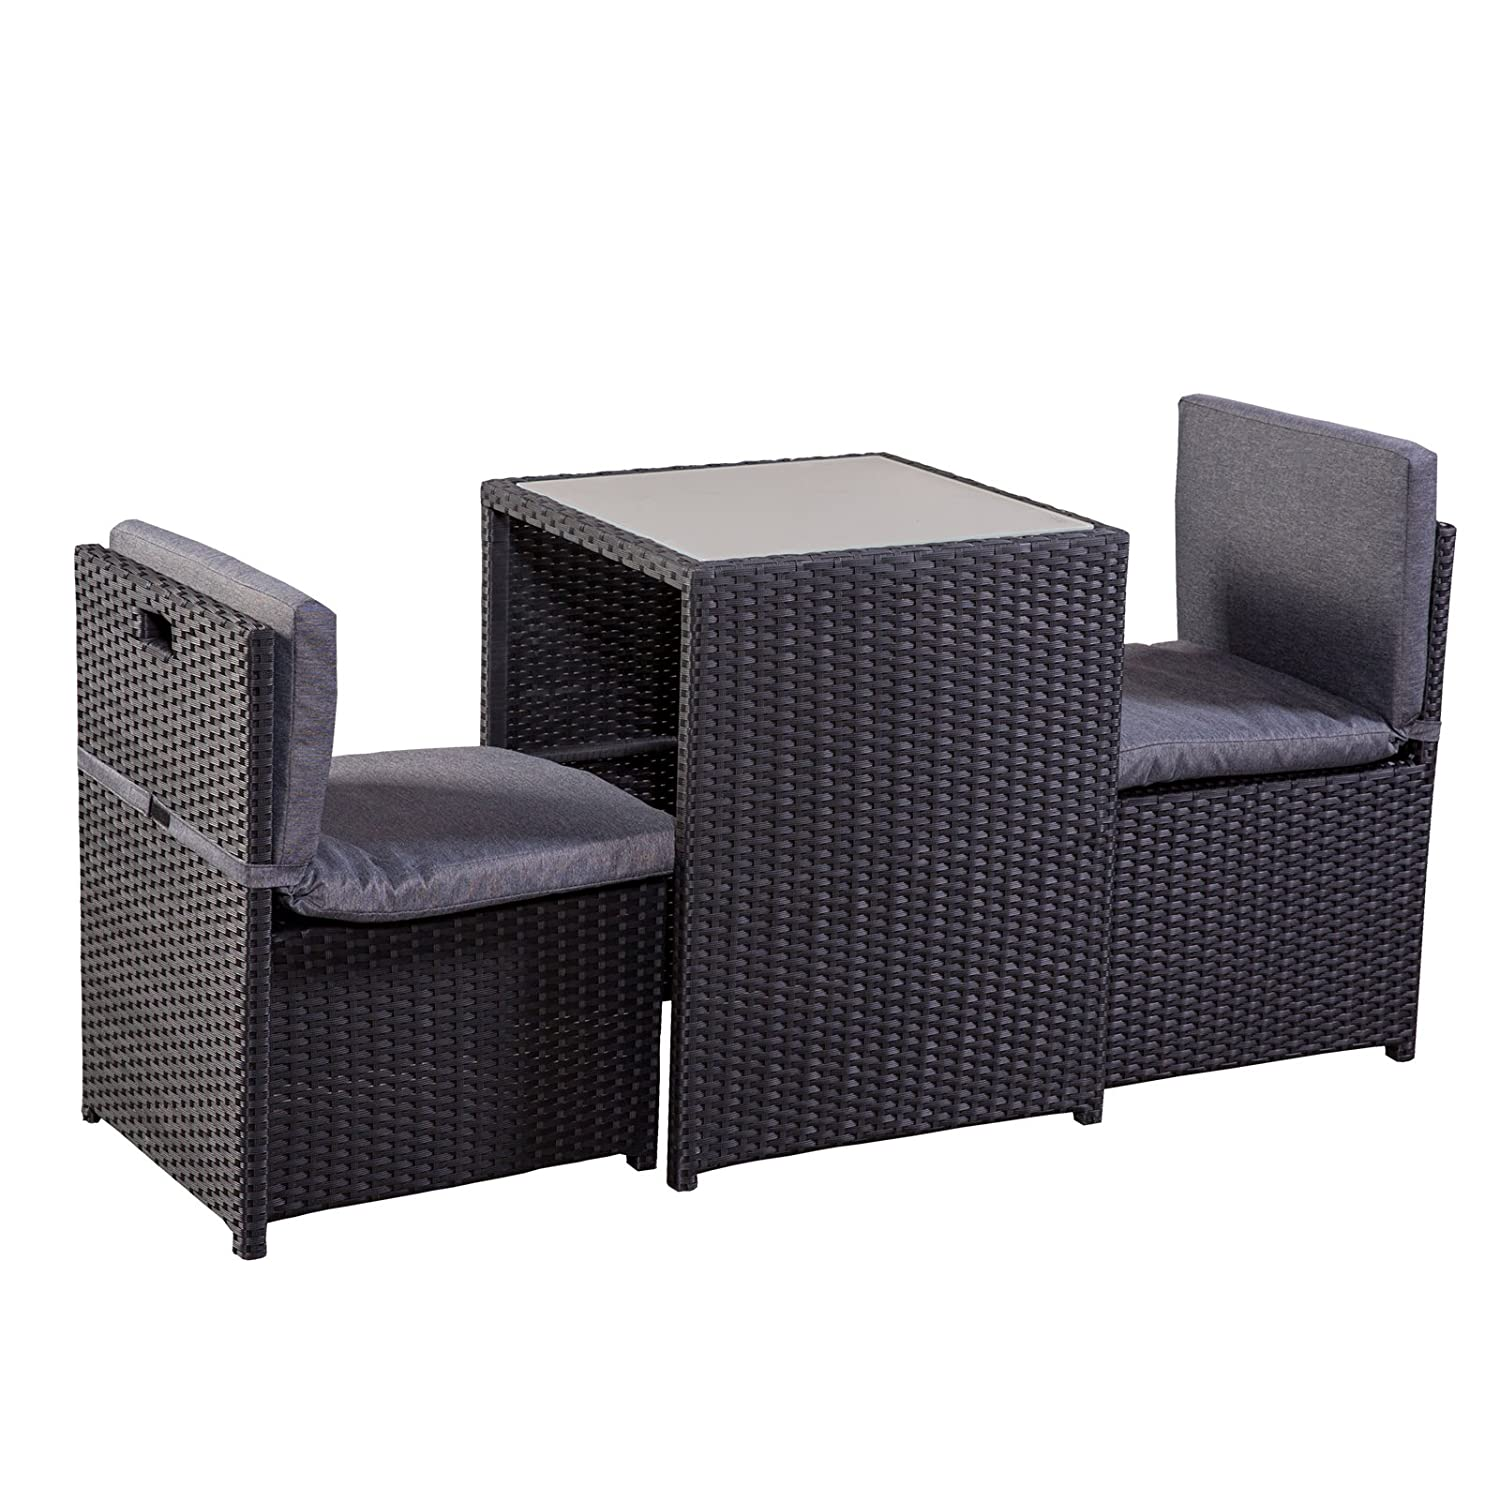 balkonm bel set balkonset terrassenm bel platzsparend box stahl pe rattan schwarz grau g nstig. Black Bedroom Furniture Sets. Home Design Ideas